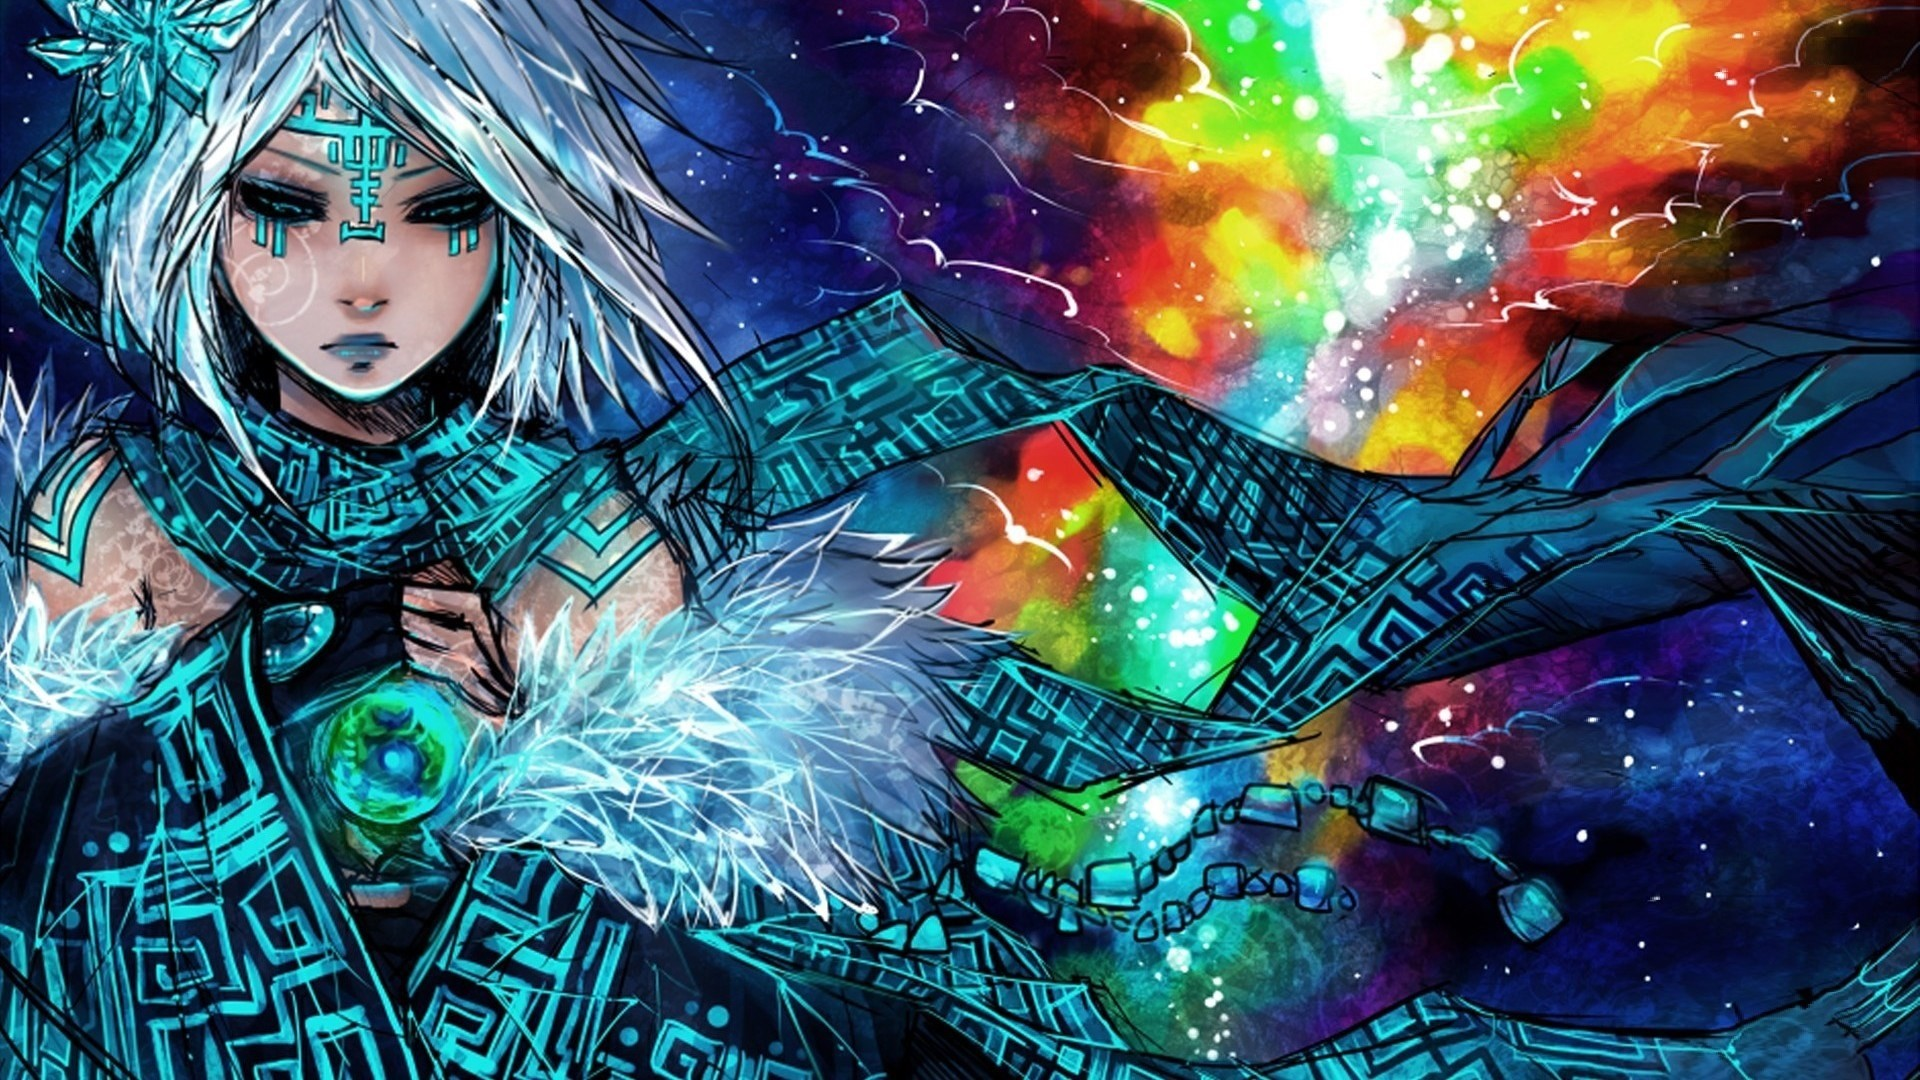 1920x1080 tribal mage hd anime wallpaper